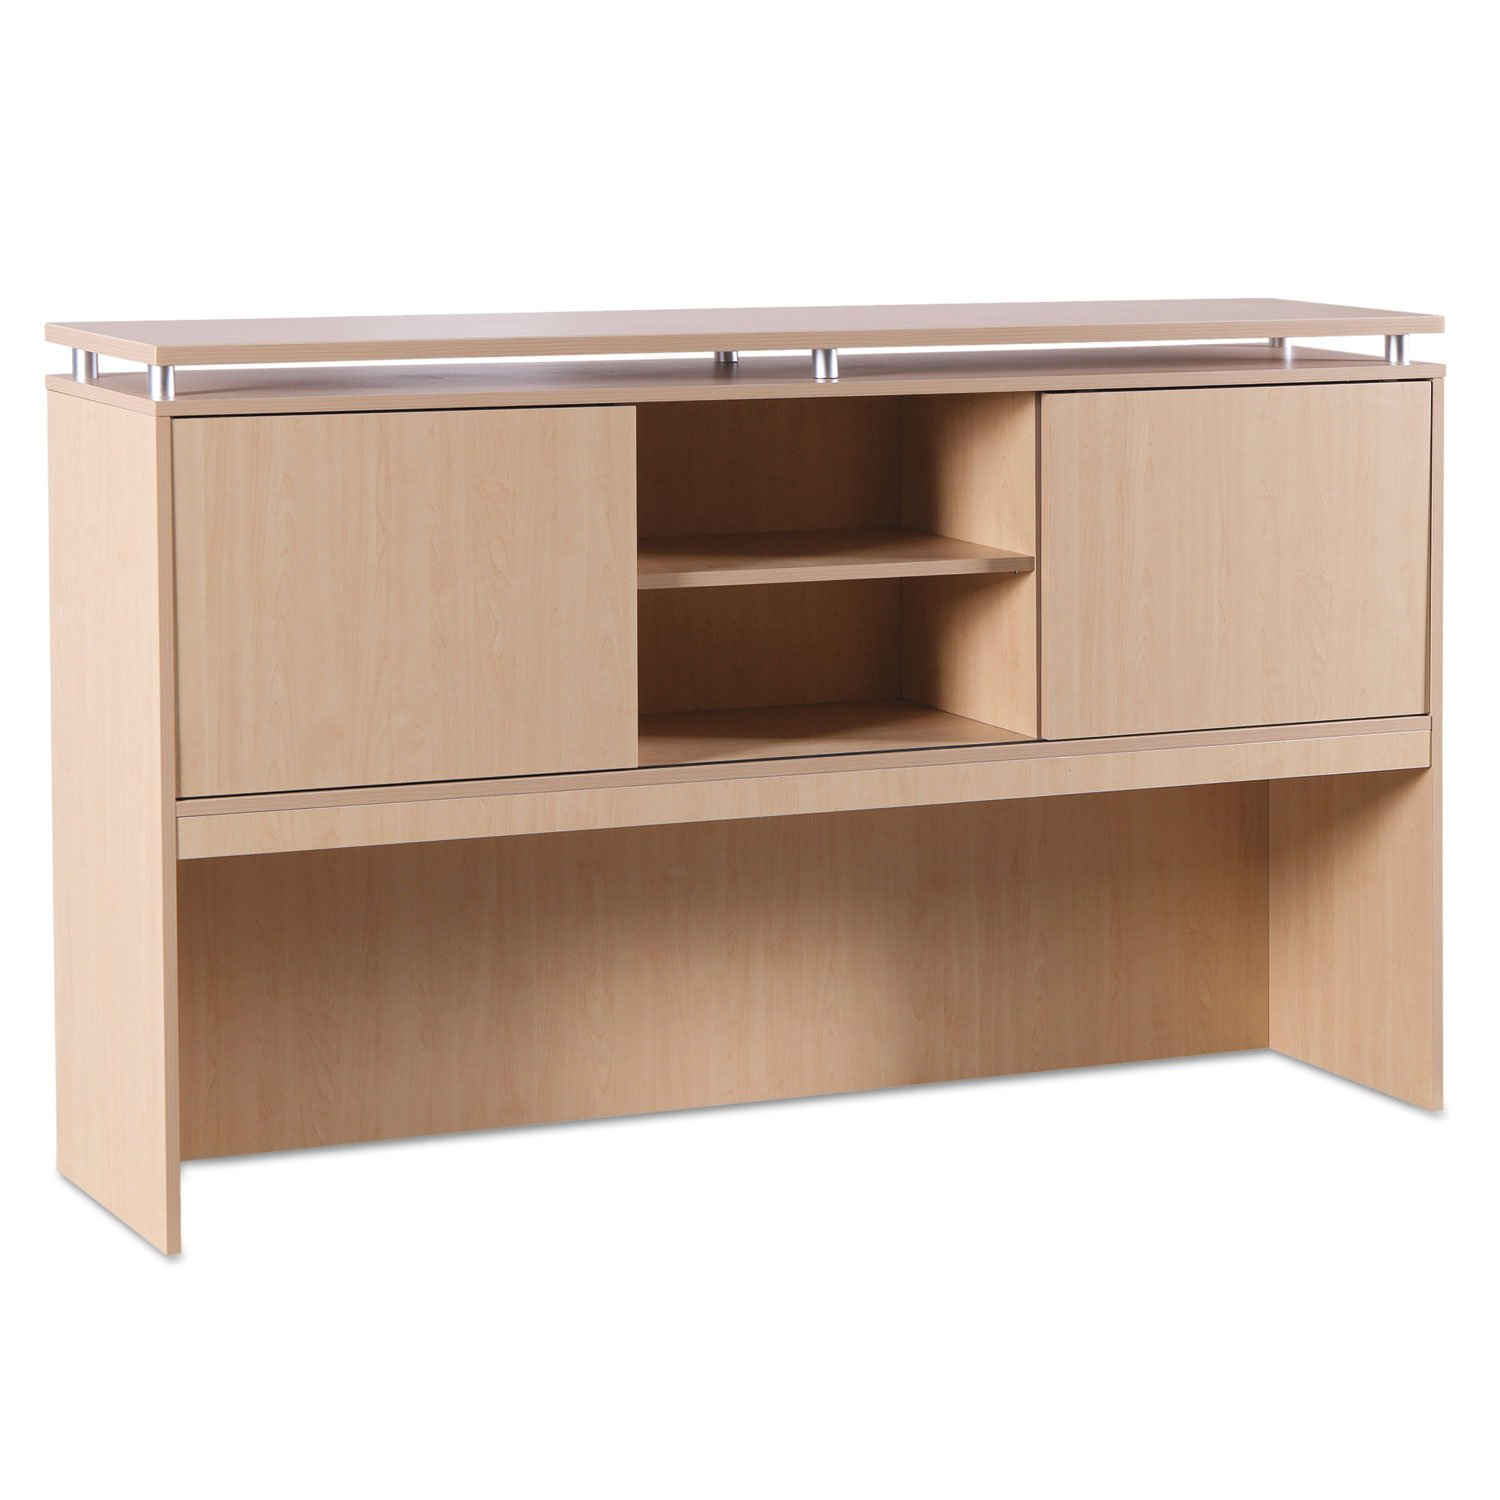 Alera - SedinaAG Series Hutch with Sliding Doors - 72w x 15d x 42-1-2h - Maple SE267215MP (DMi EA